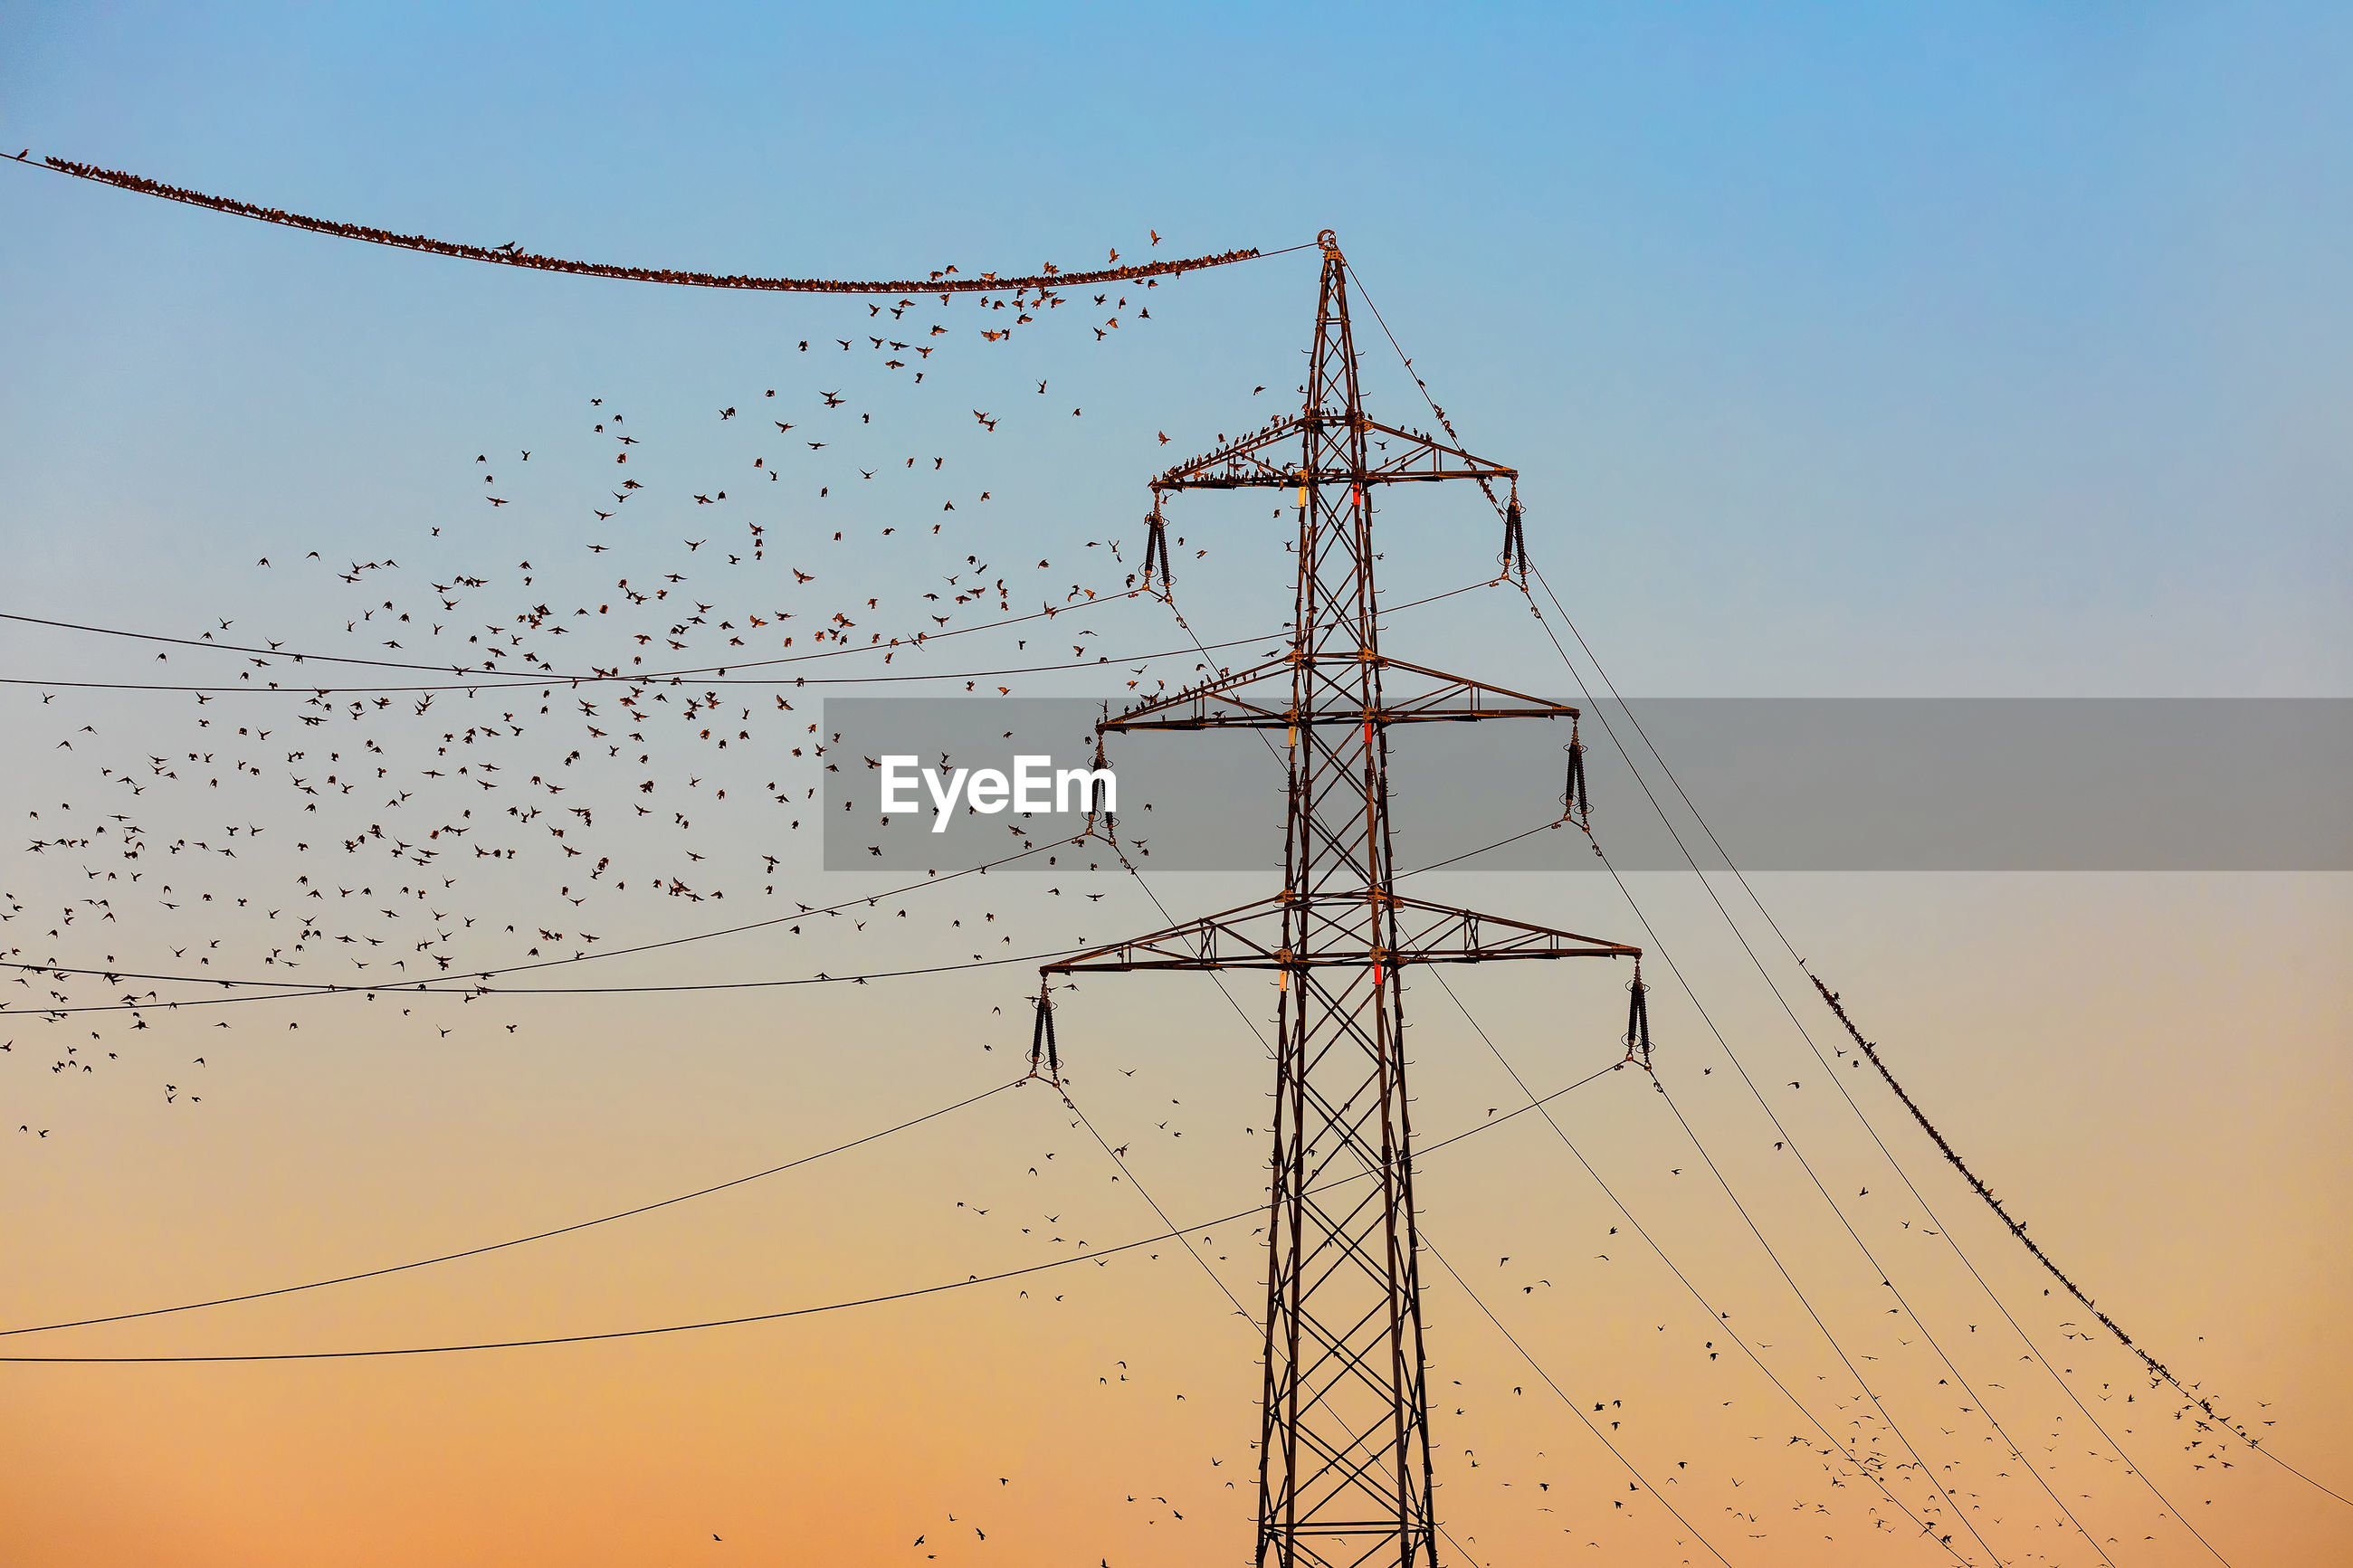 LOW ANGLE VIEW OF BIRDS ON ELECTRICITY PYLONS AGAINST SKY